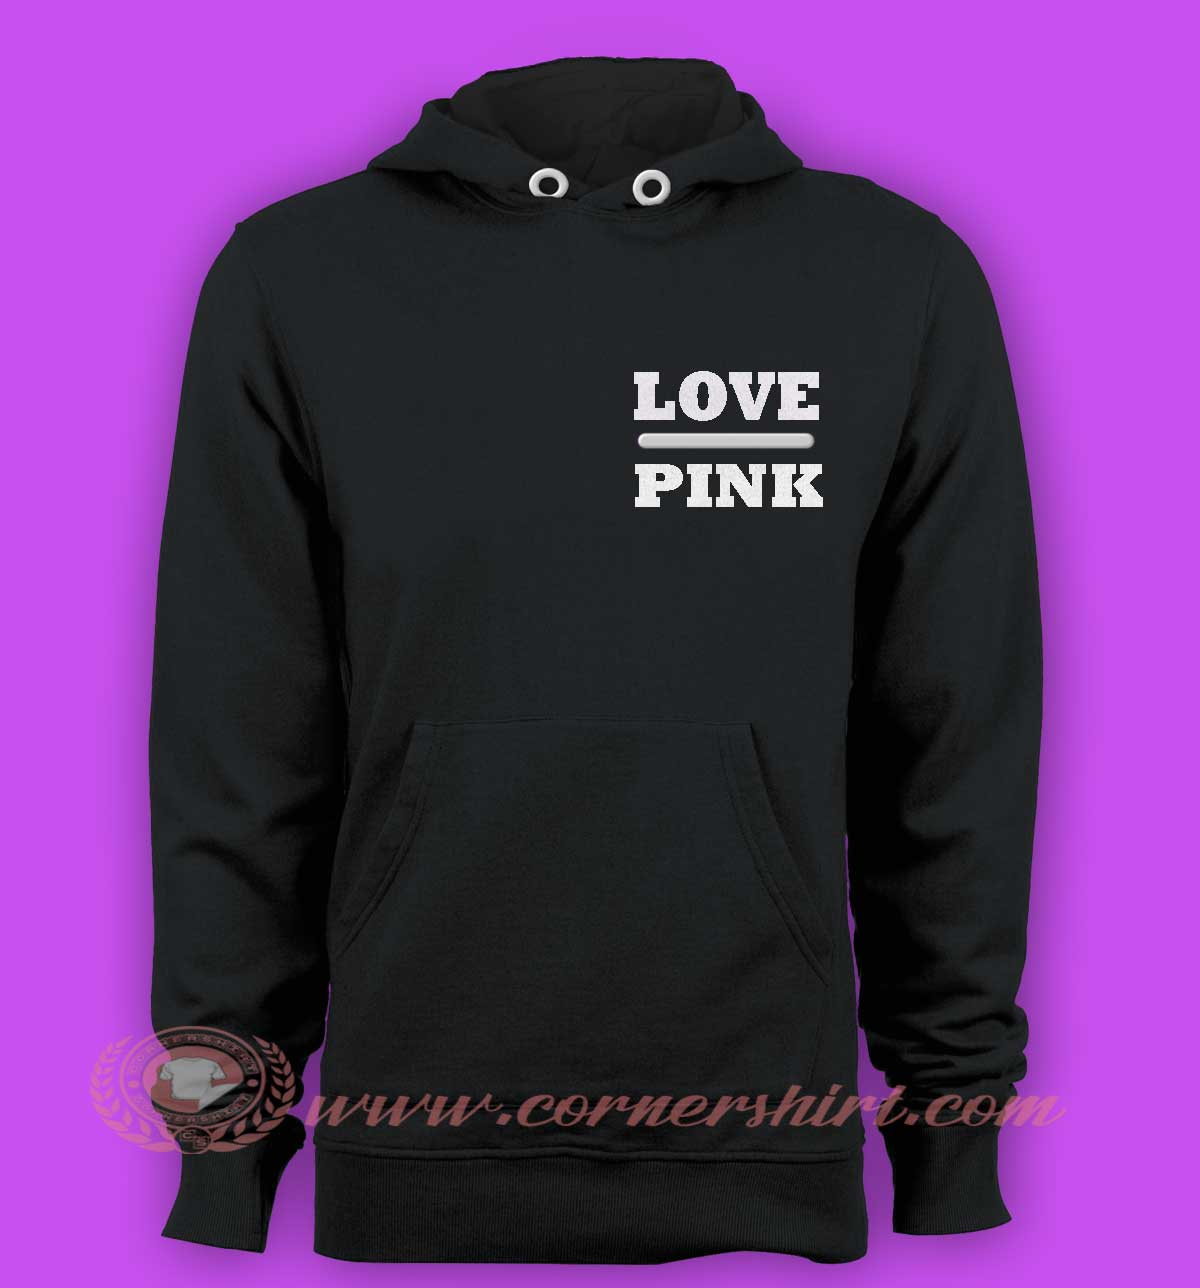 Love pink hoodies